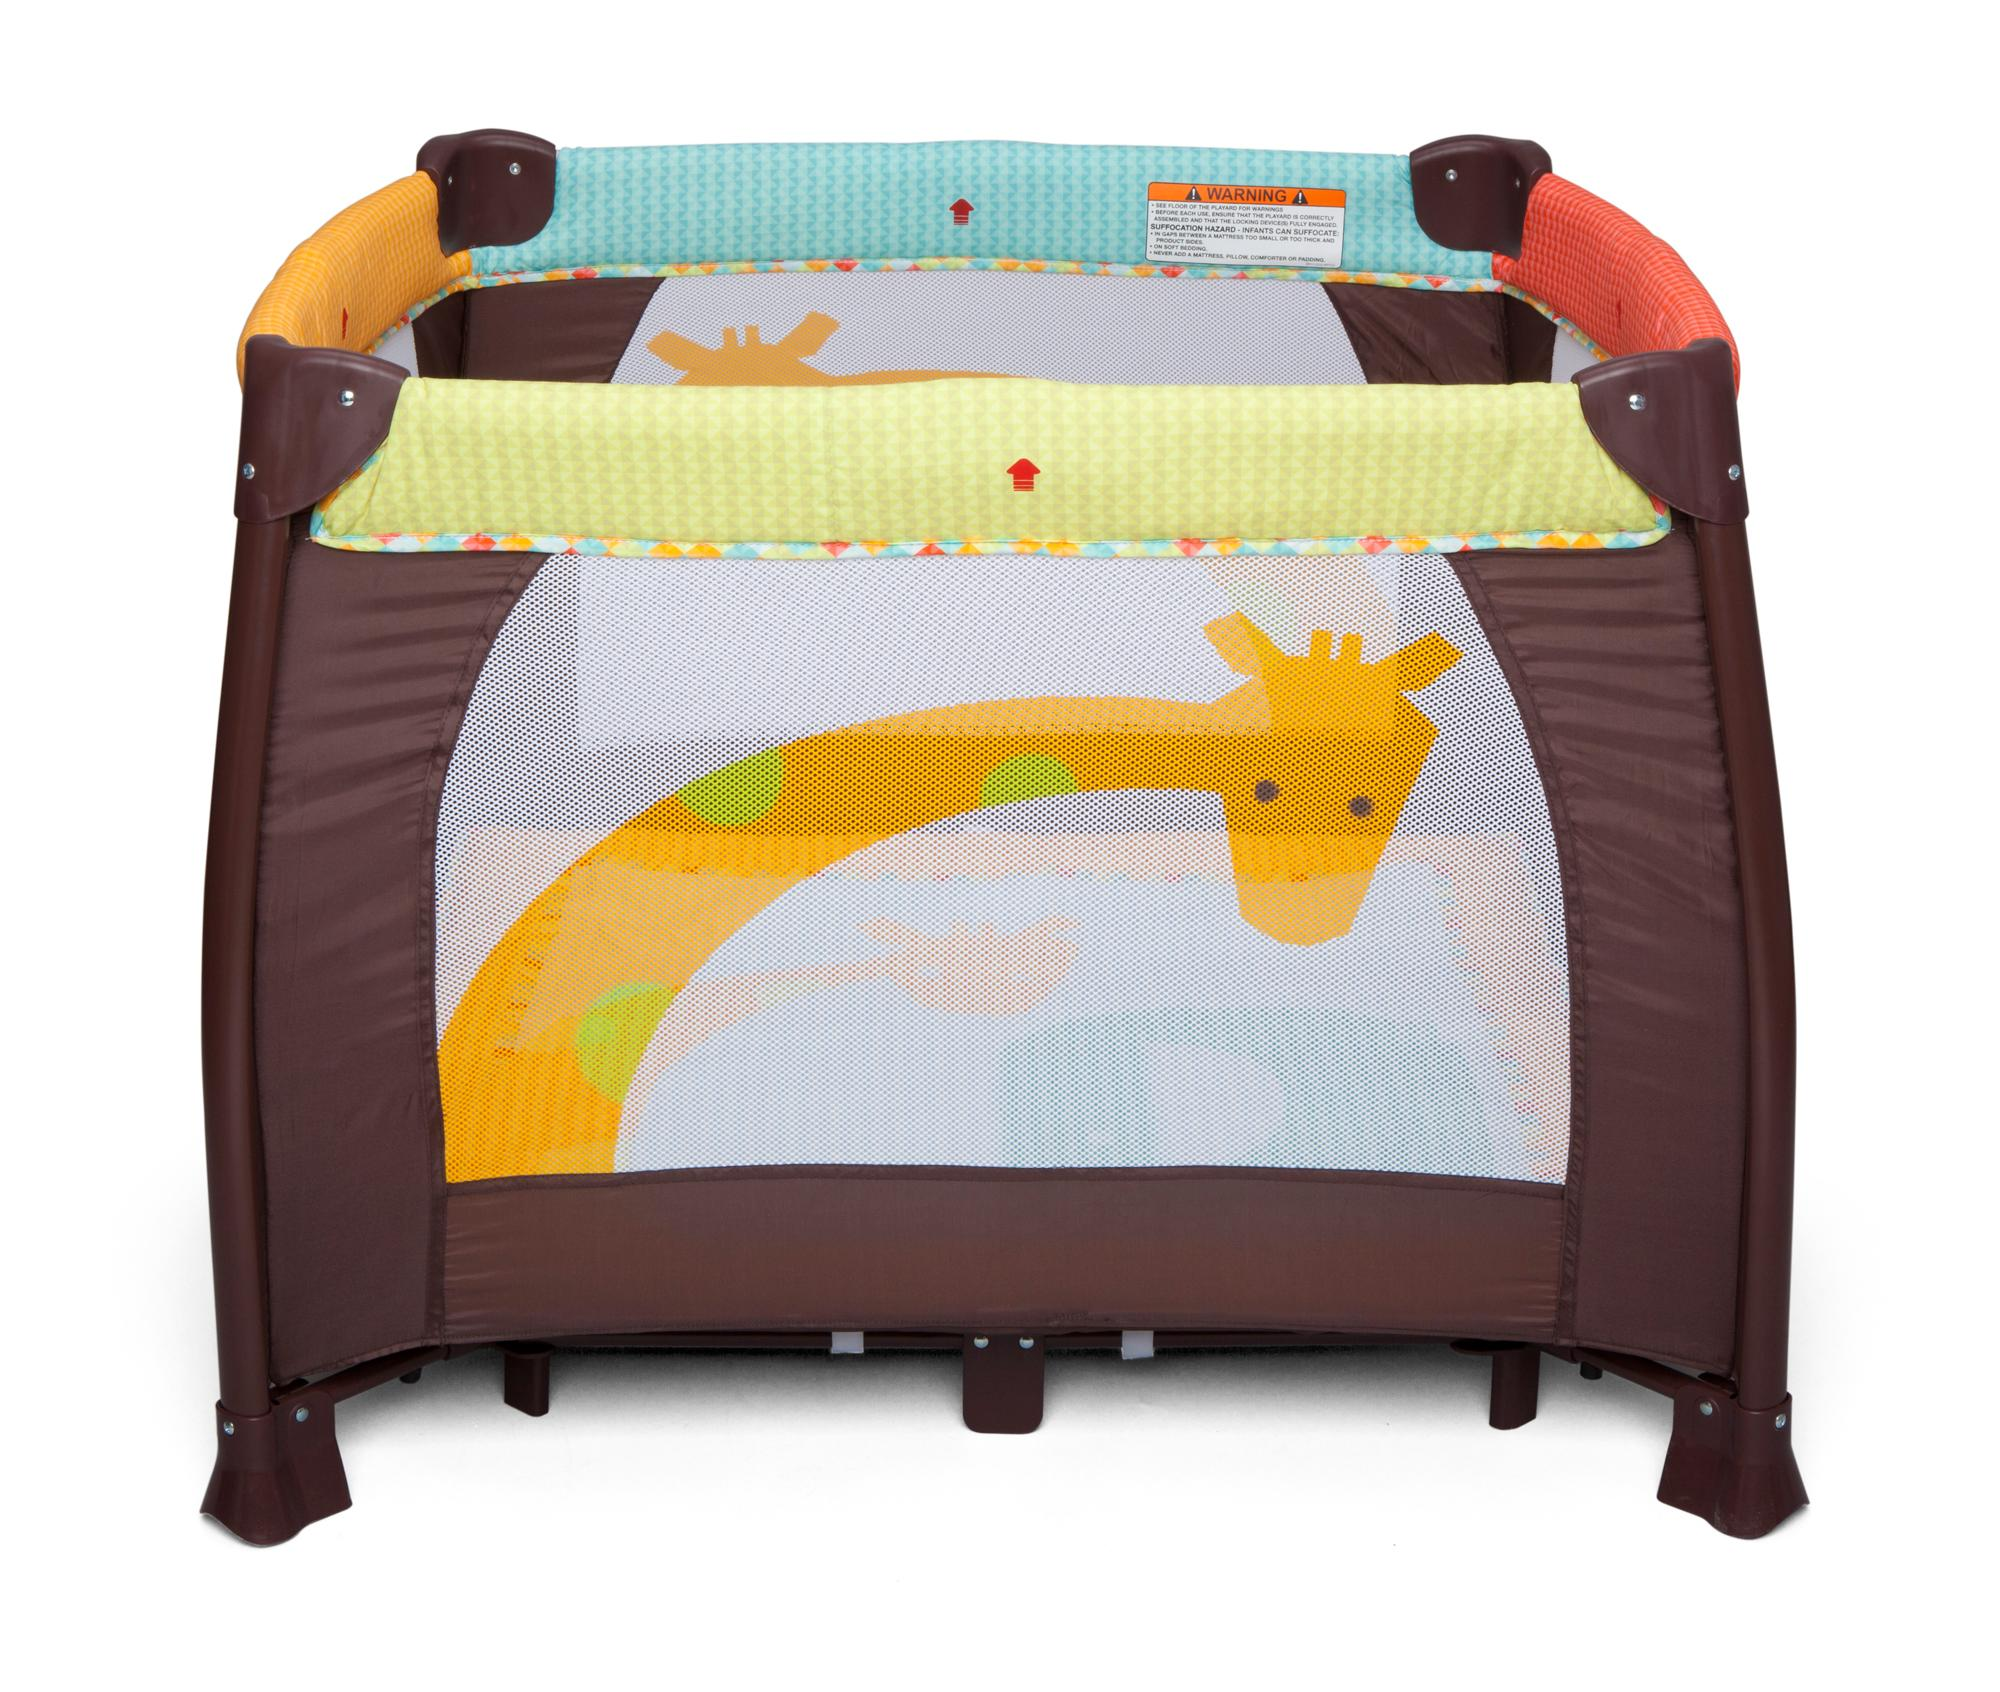 "Delta Children 36"" x 36"" Playard Novel Ideas Amazon Baby"